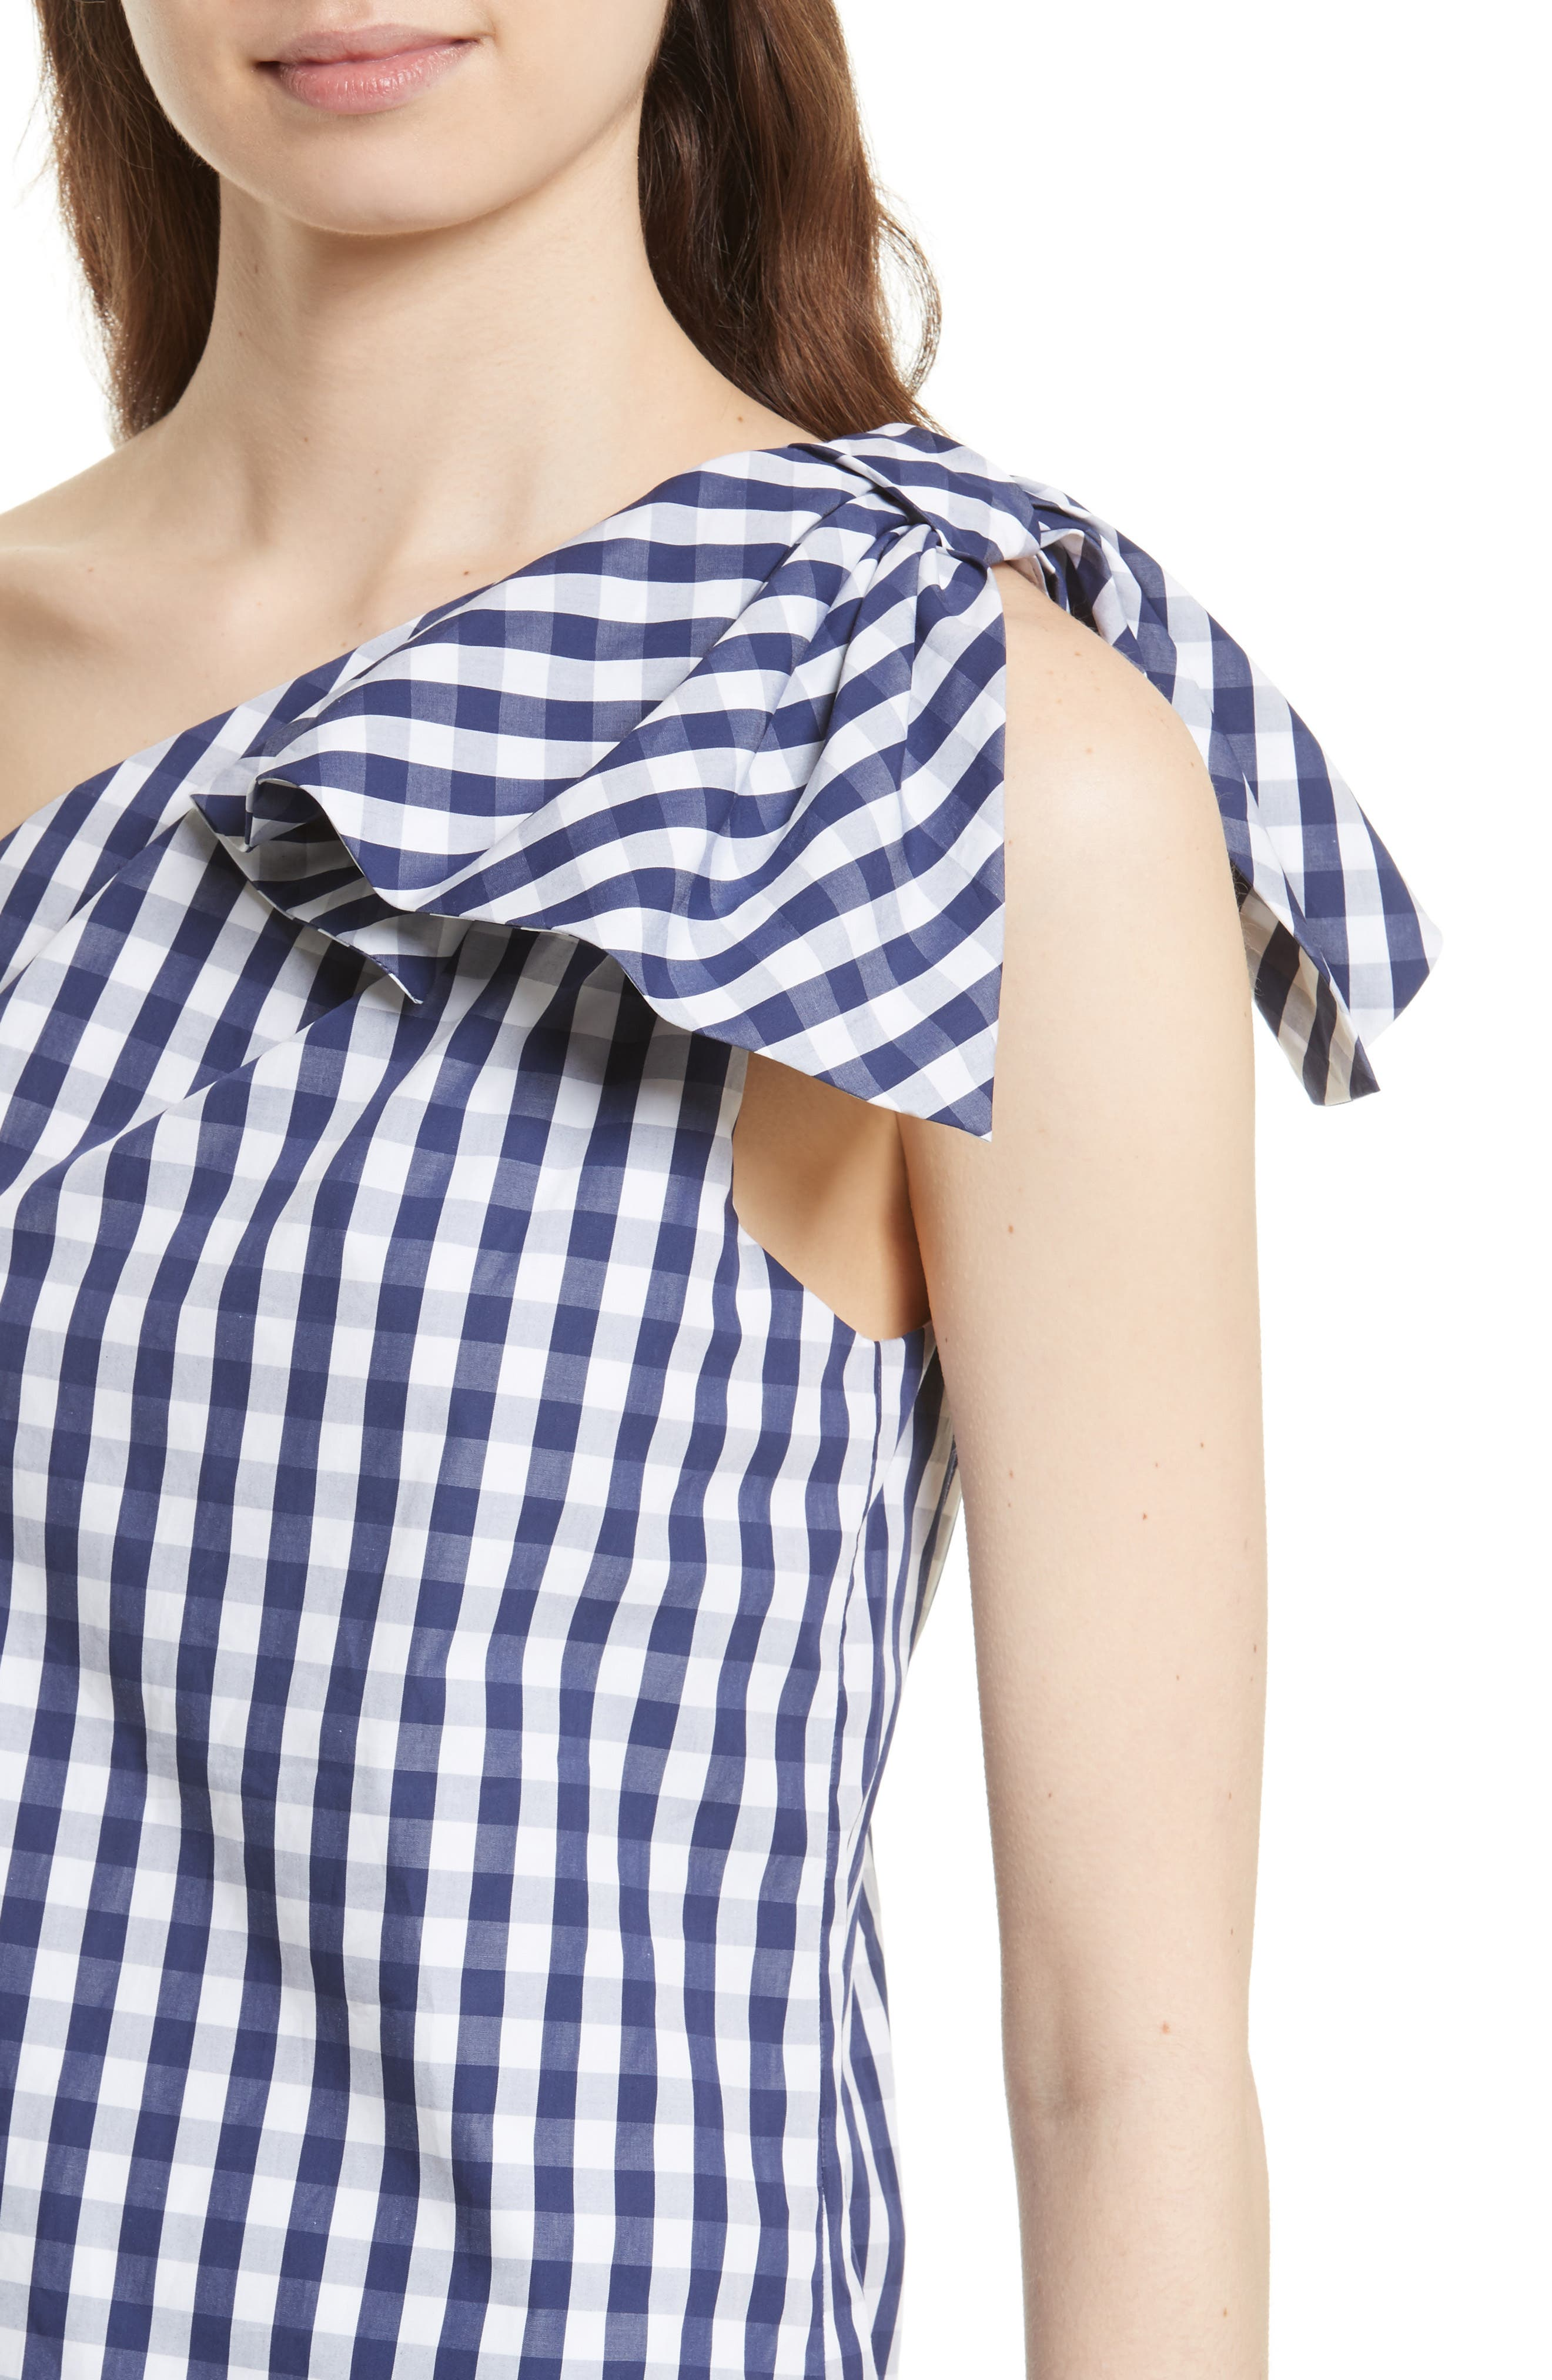 MILLY, Cindy One Shoulder Gingham Top, Alternate thumbnail 4, color, 410